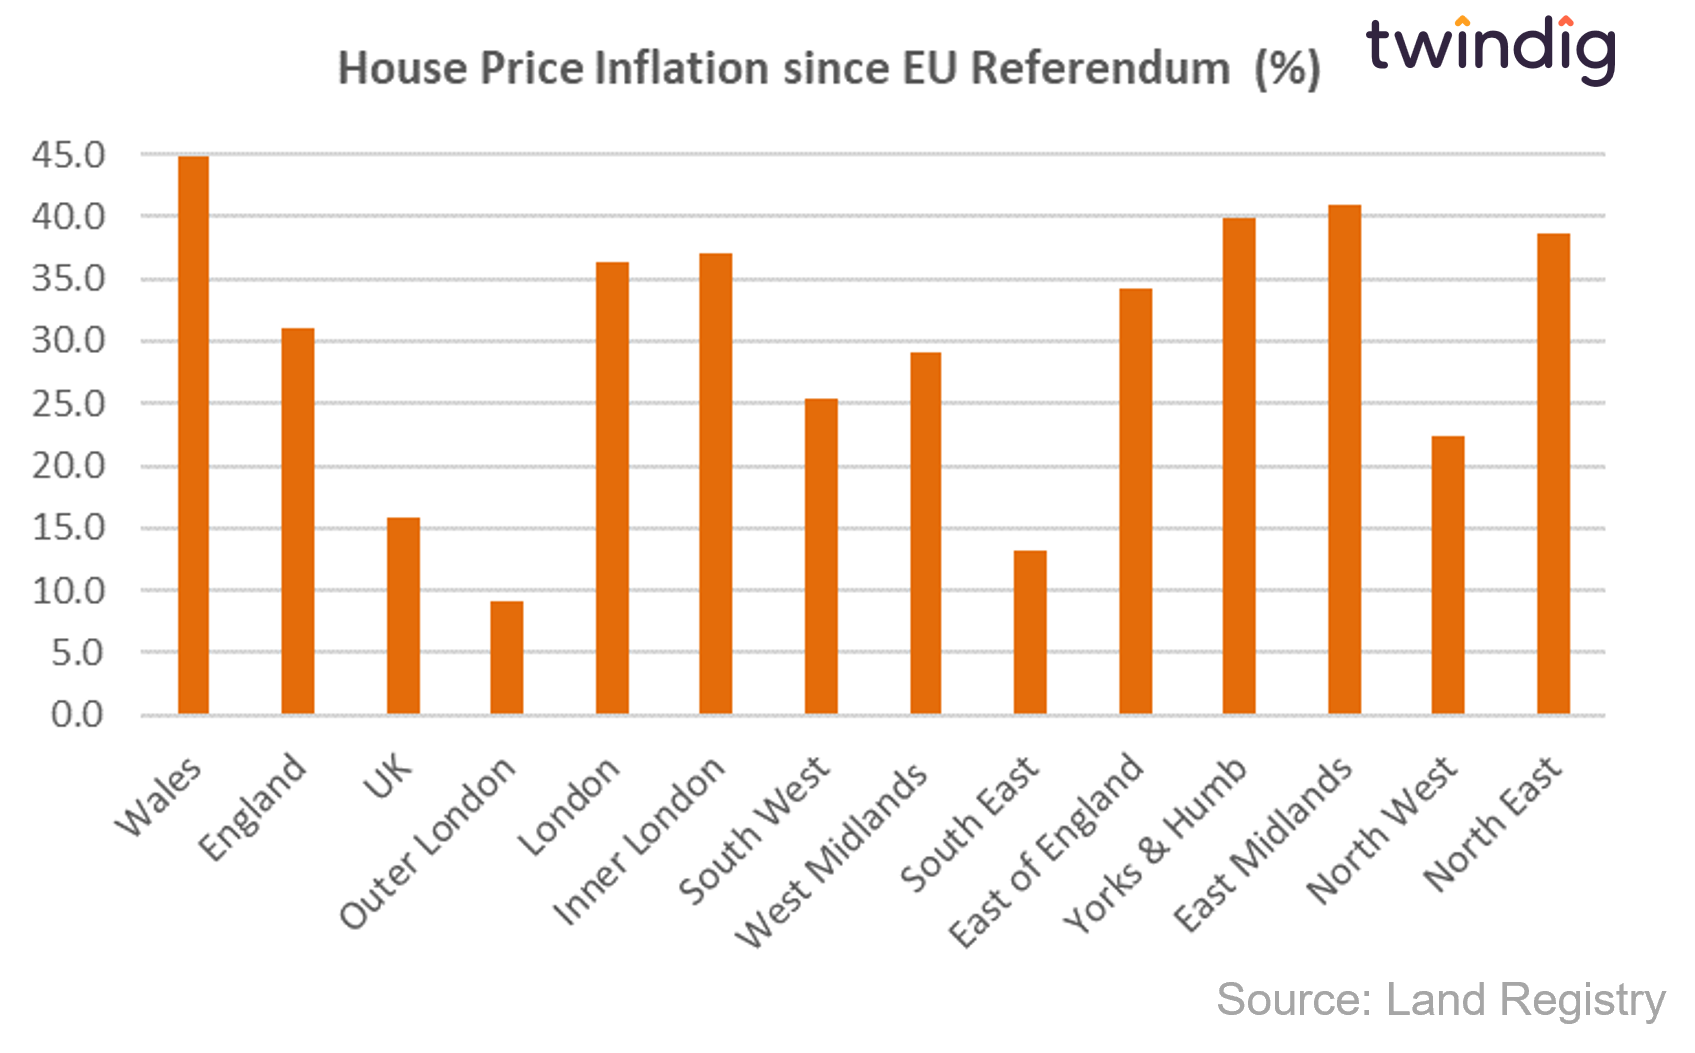 House price inflation by region in the UK since the EU Brexit referendum